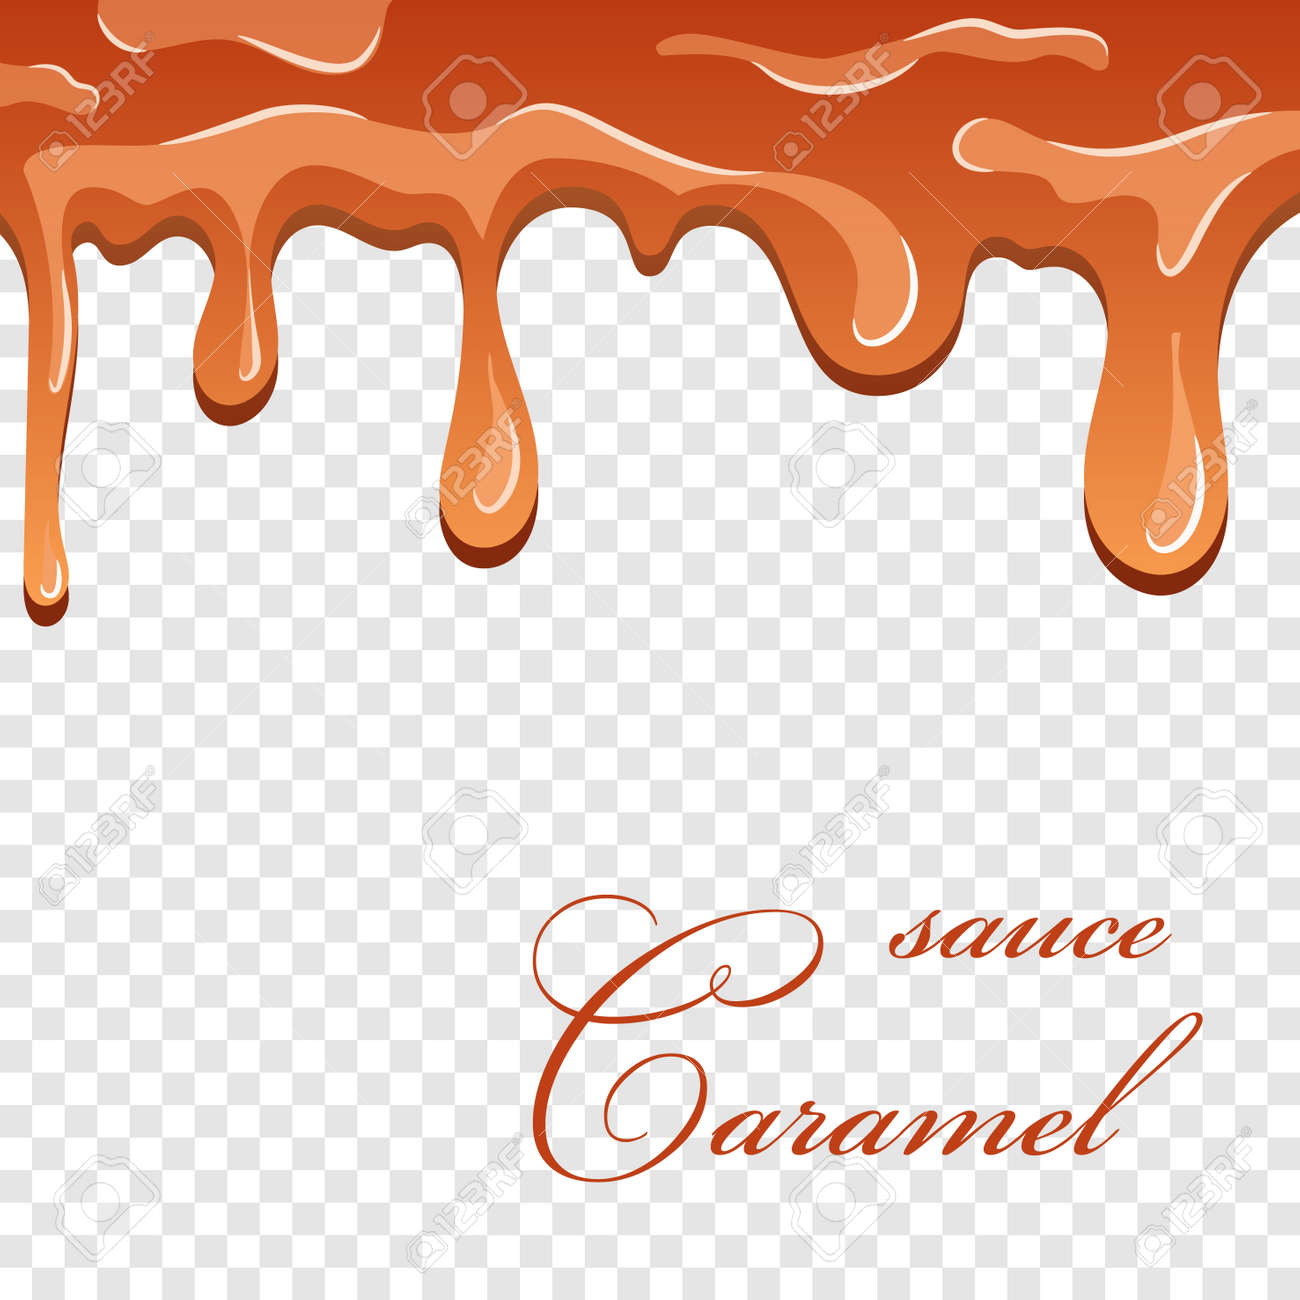 Caramel Sauce 3d Flowing Caramel Liquid Isolated White Transparent Royalty Free Cliparts Vectors And Stock Illustration Image 129343635